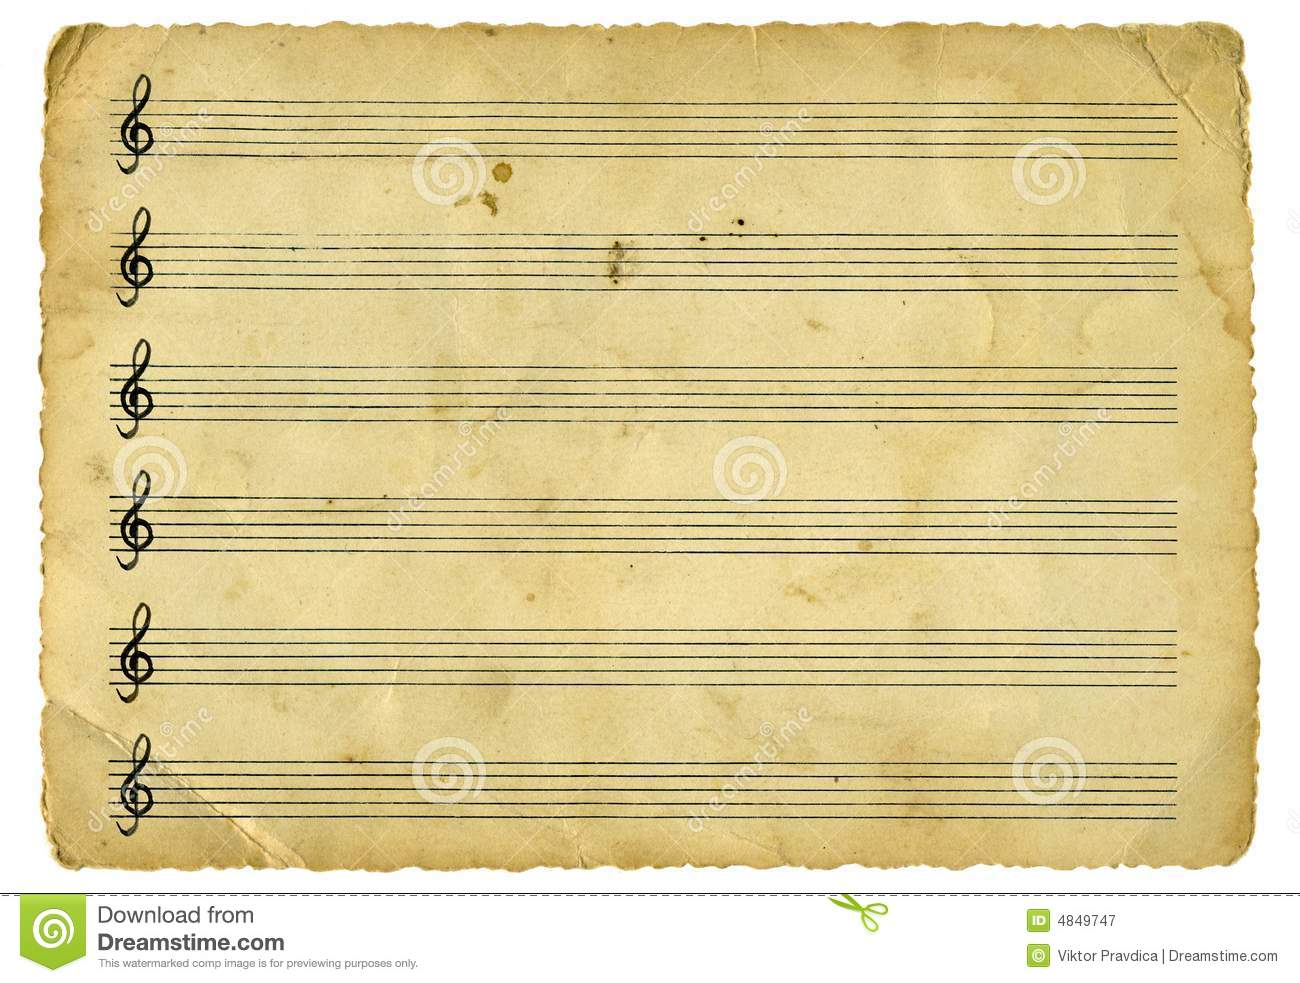 Vintage Music Sheet Royalty Free Stock Photography - Image: 4849747